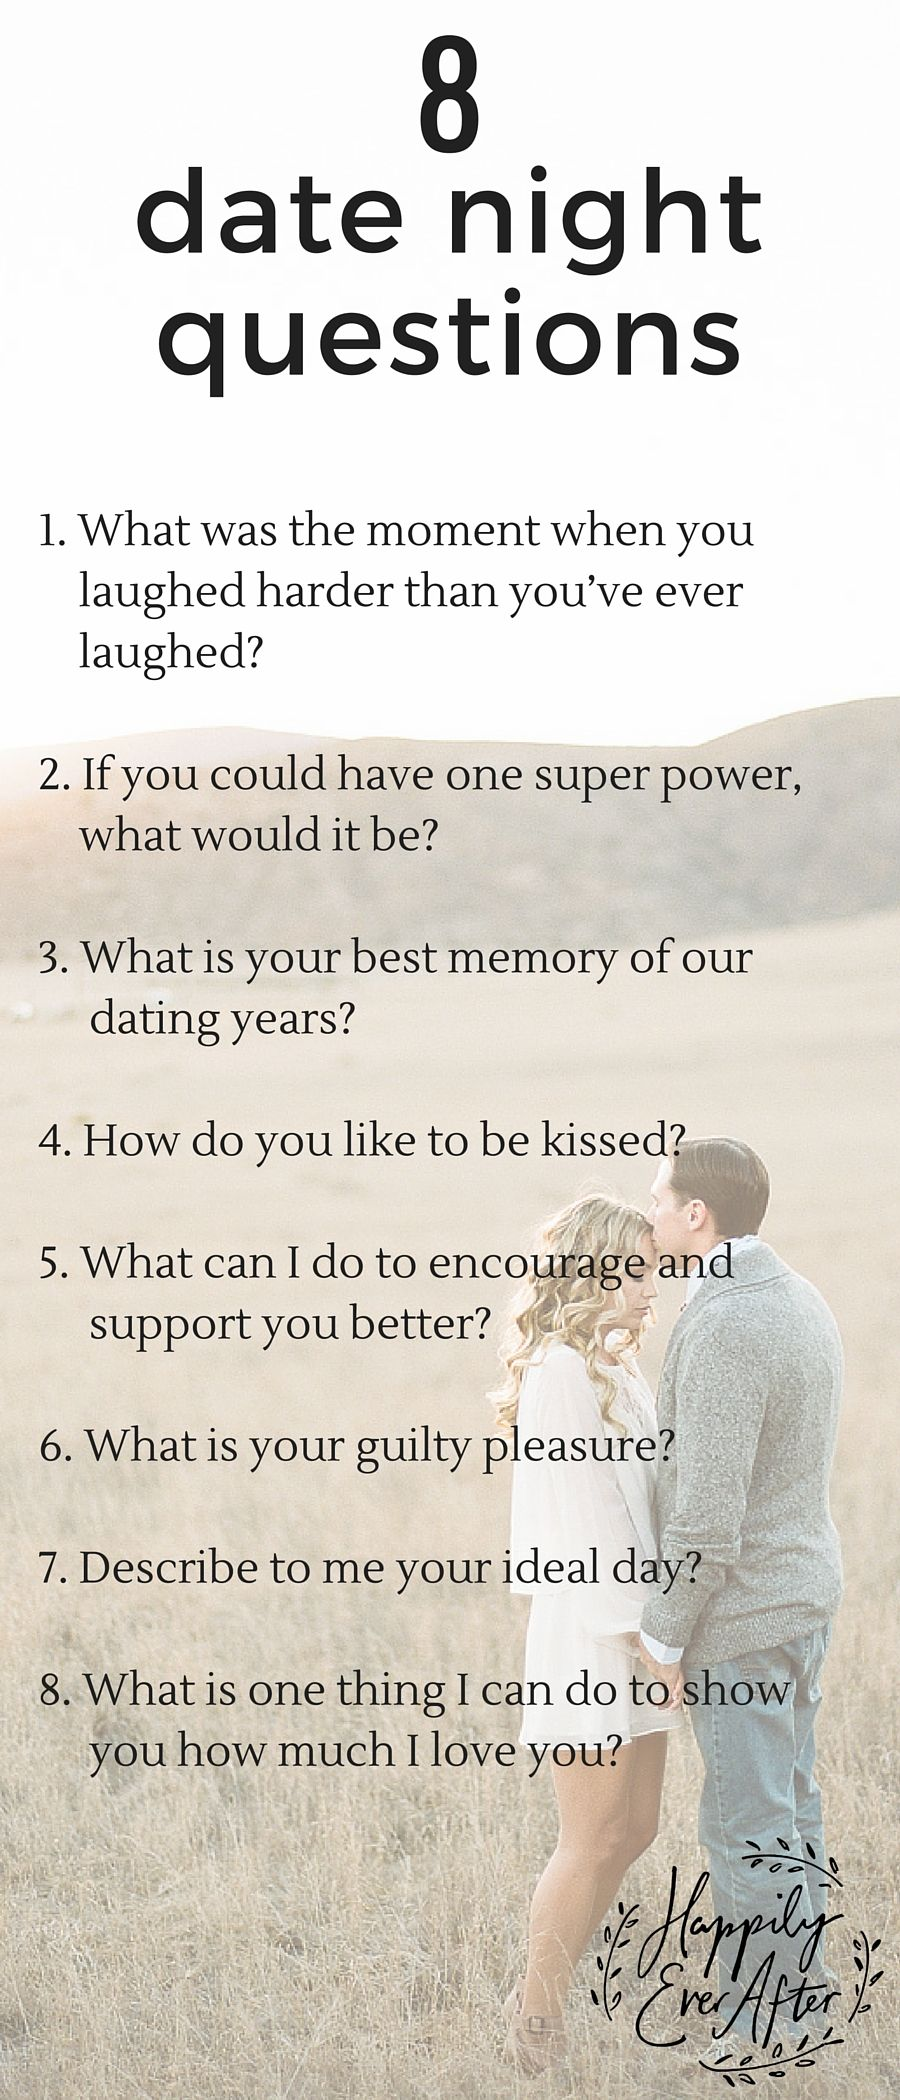 Dating questions to ask each other